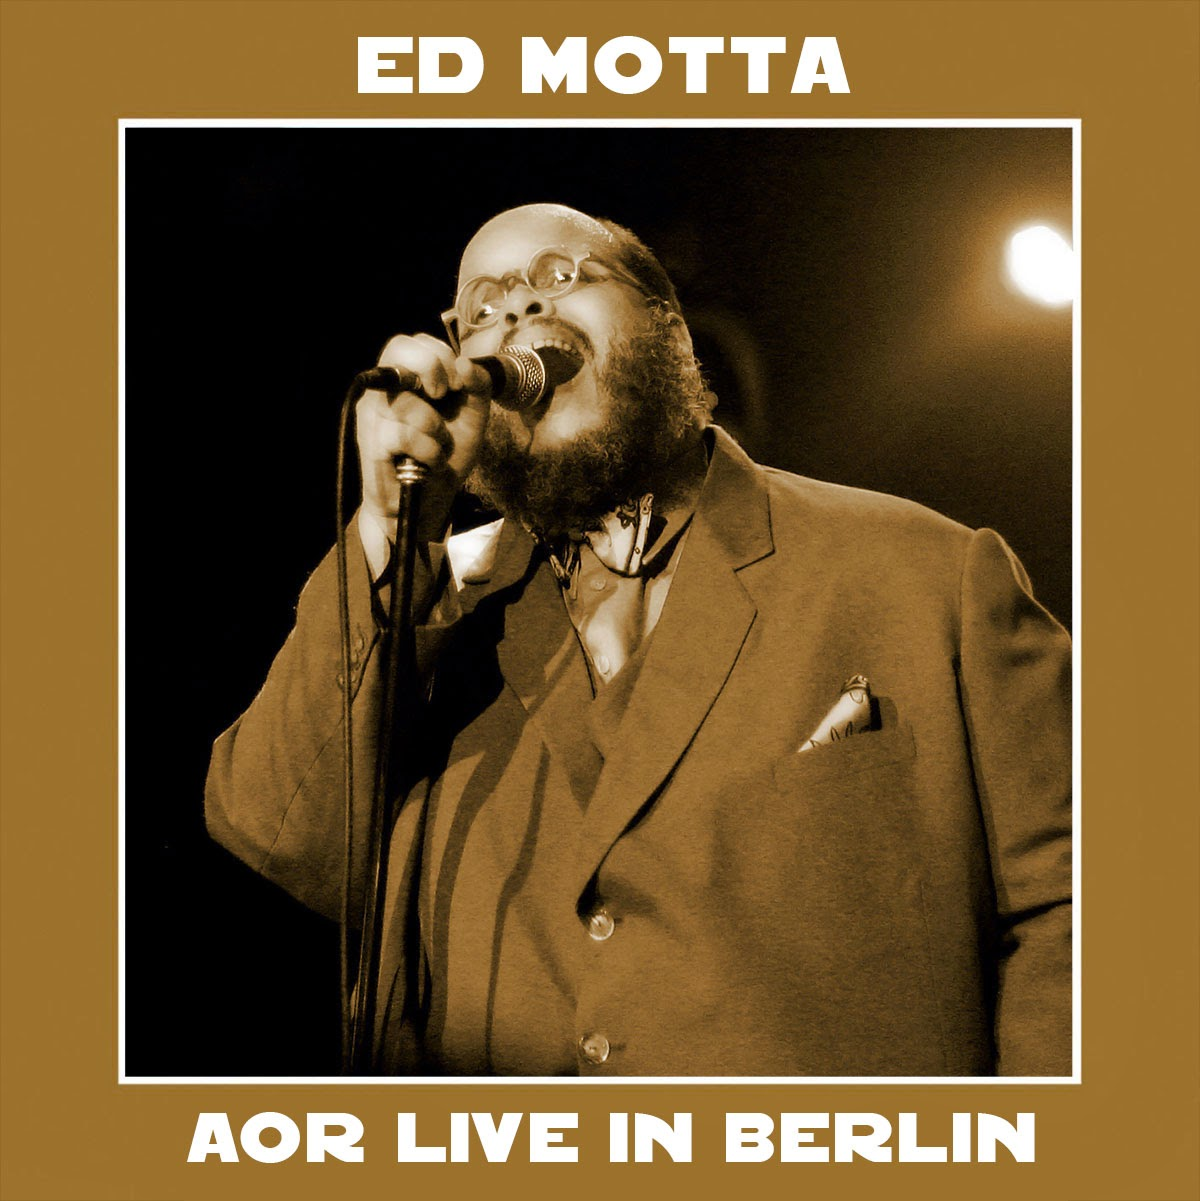 ed motta AOR live in berlin